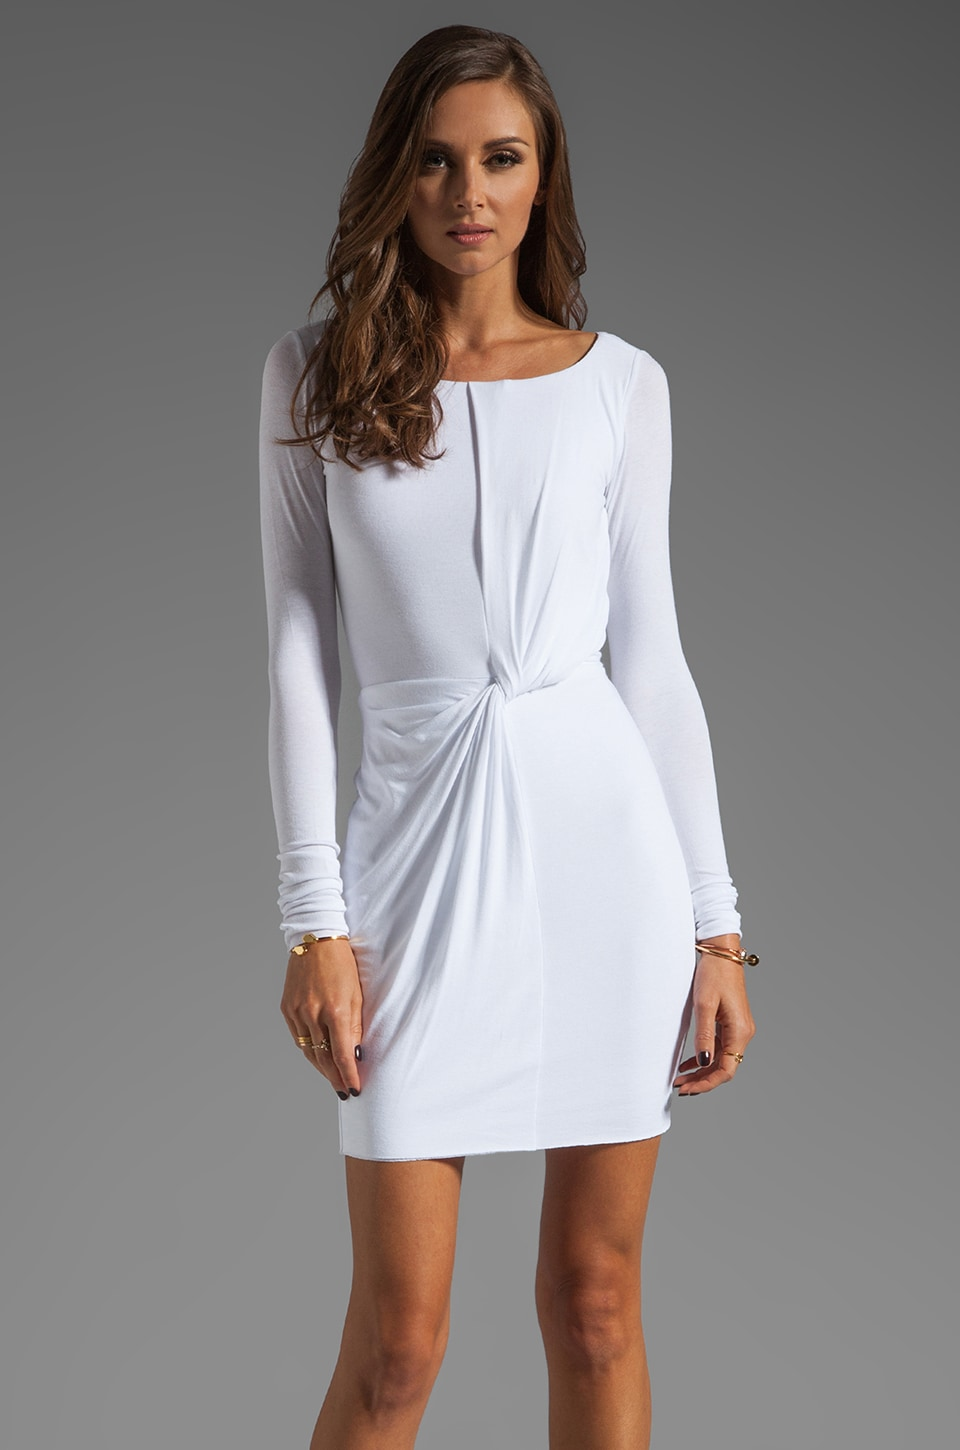 Bailey 44 Masada Dress in White